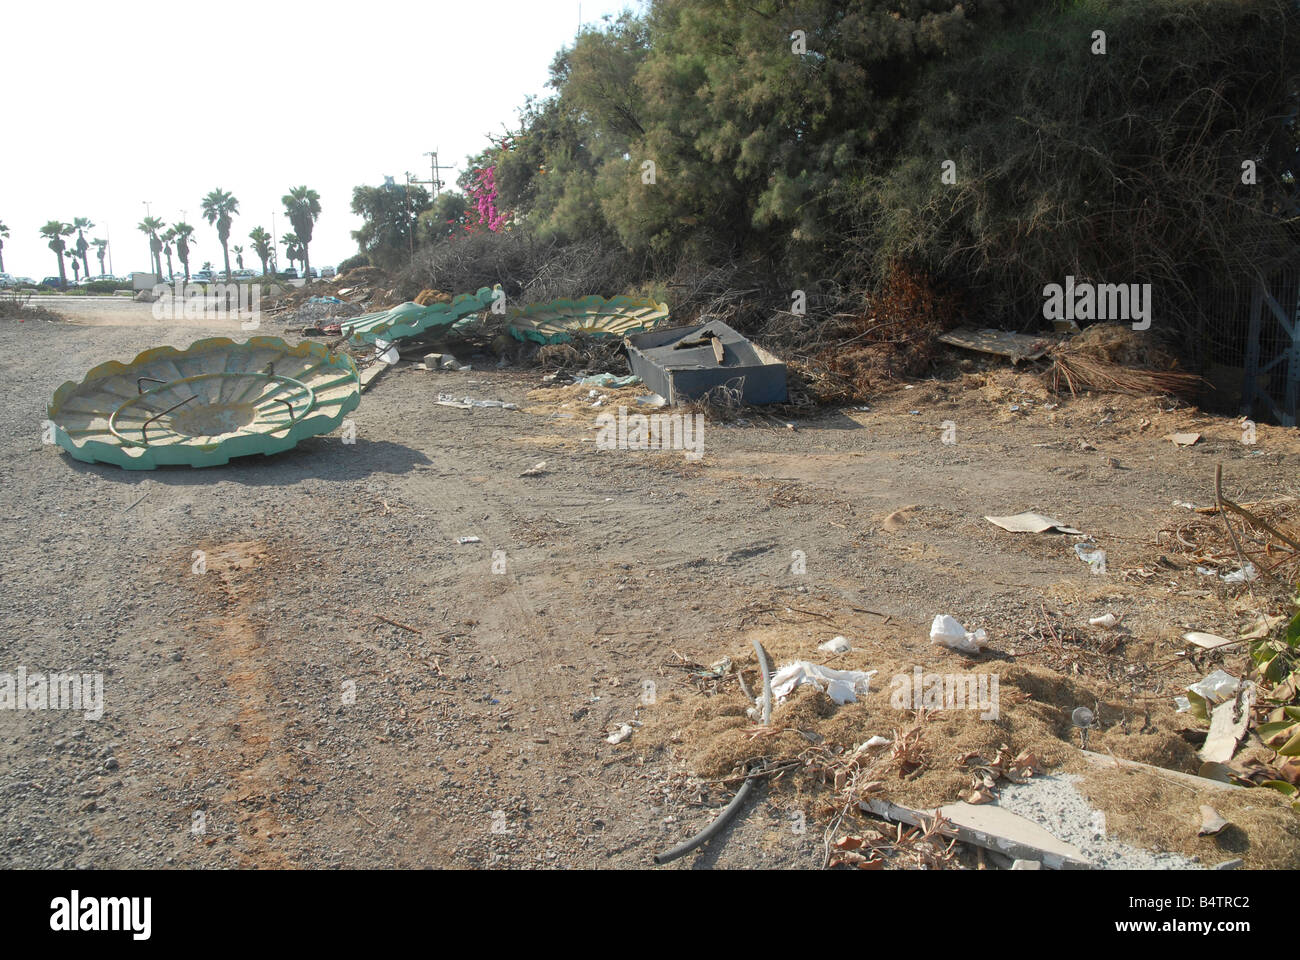 Building material and other trash discarded in the countryside - Stock Image